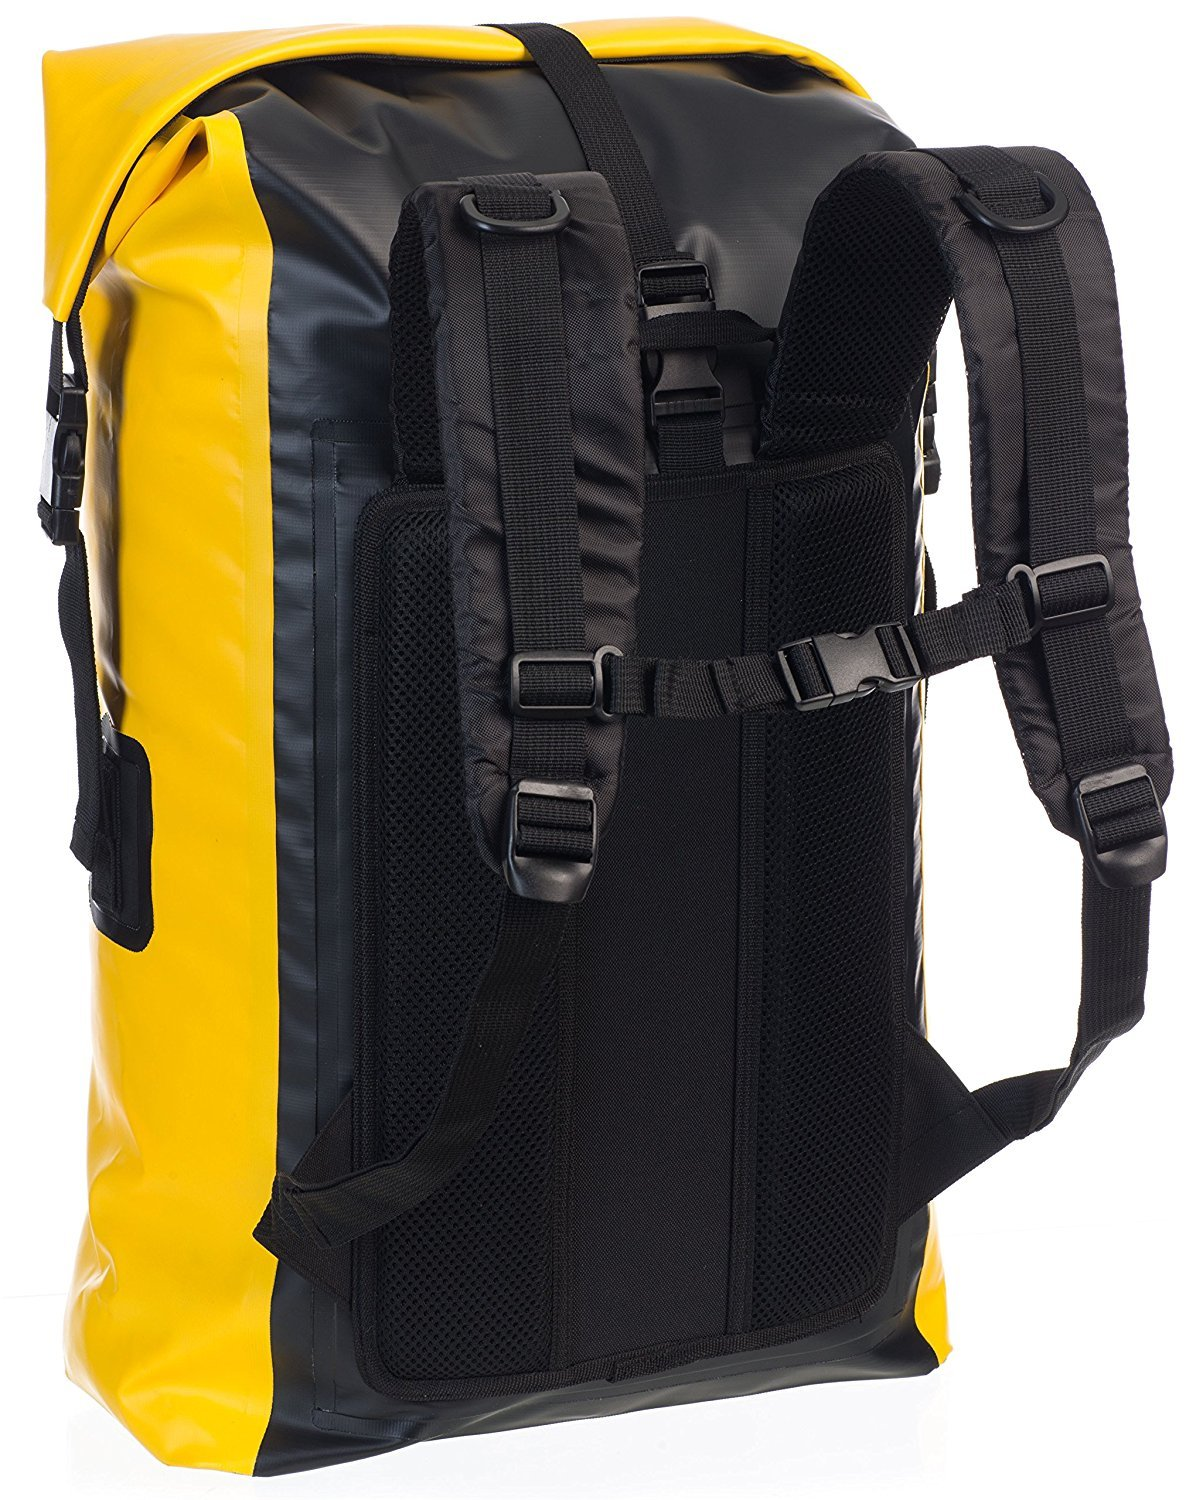 a7c5c29931b7 Earth Pak Waterproof Backpack  35L    55L Heavy Duty Roll-Top Closure with  Easy Access ...